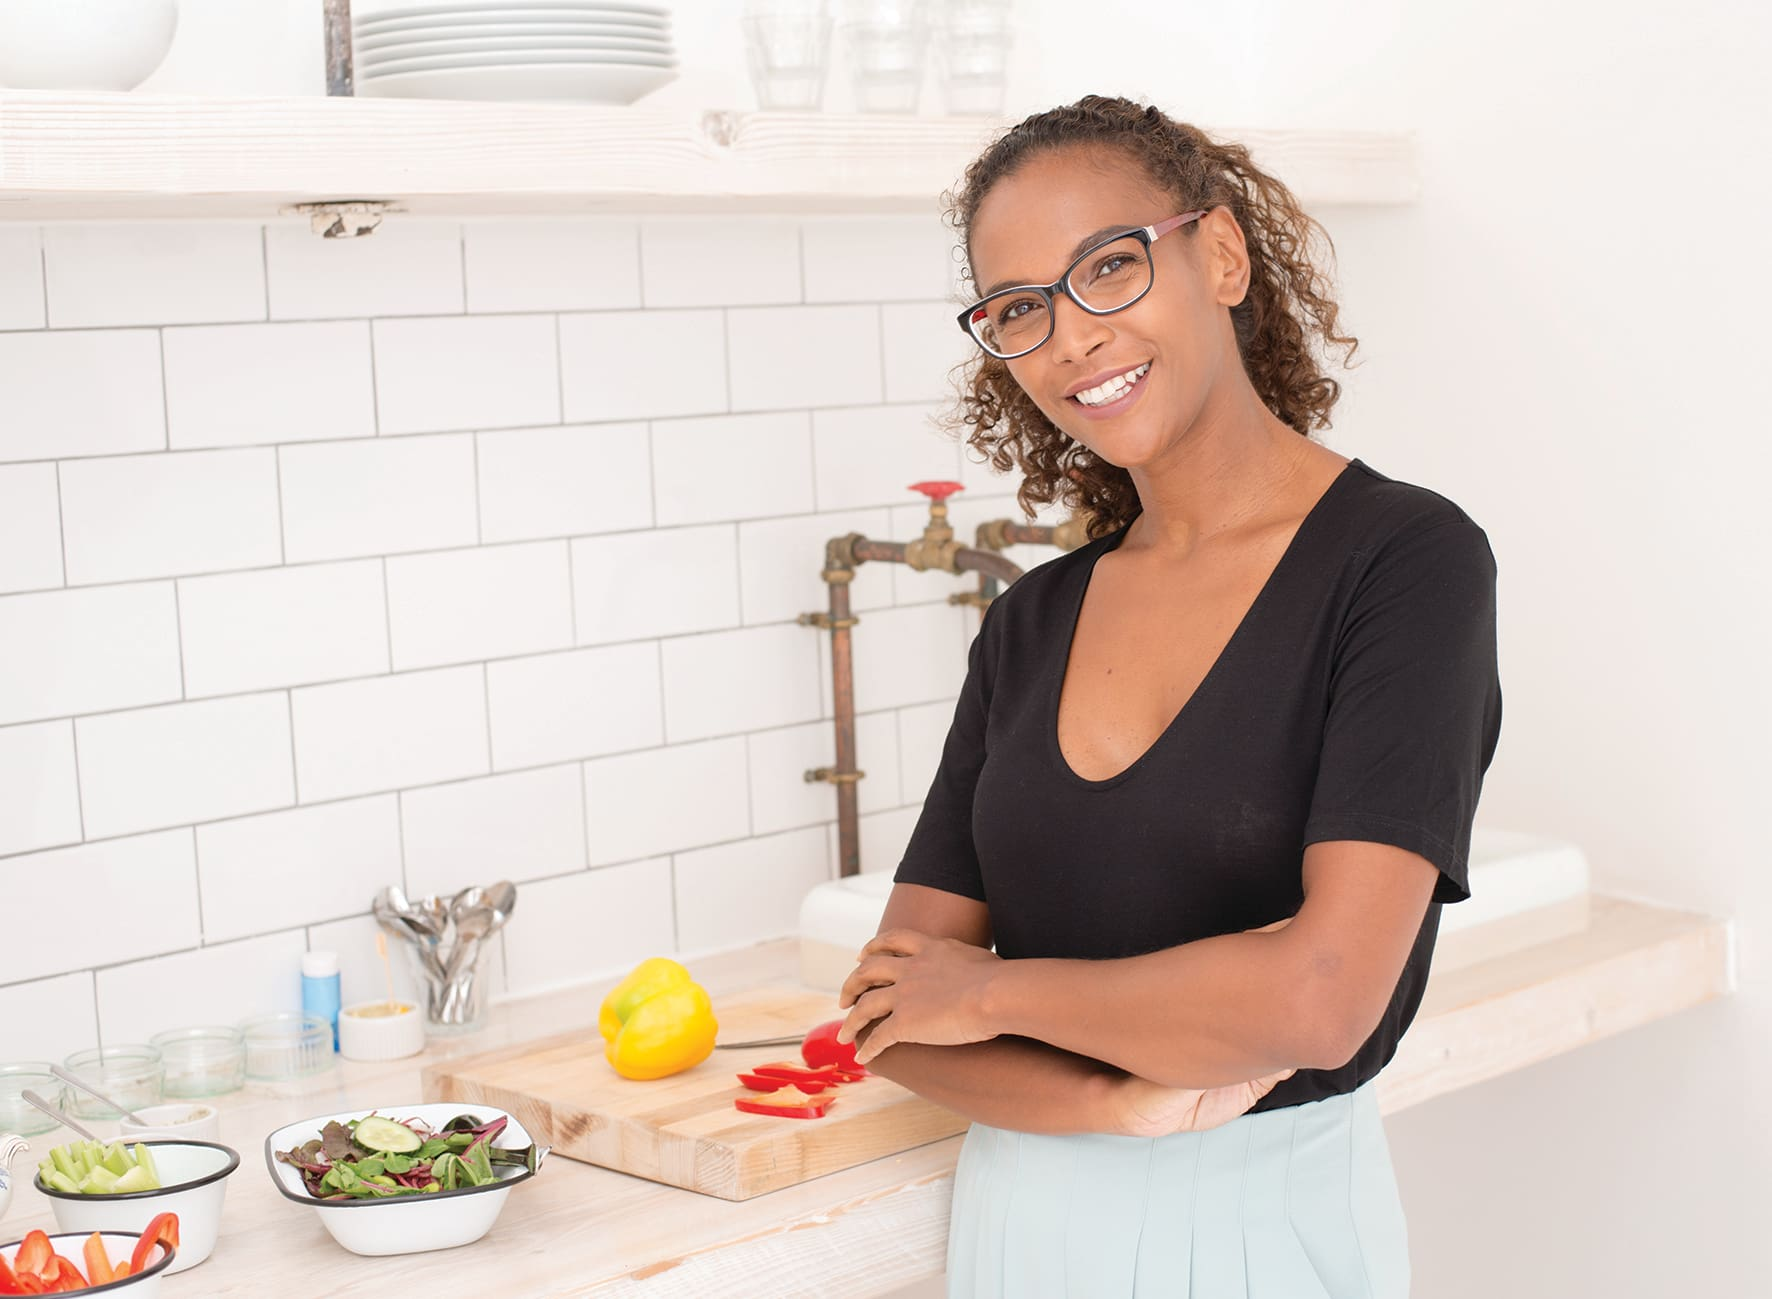 Young brown haired woman in a black t-shirt and white skirt cooking in the kitchen in front of yellow and red peppers, green lettuce and cucumber and cutting board and knife while wearing black squared glasses with brown arms